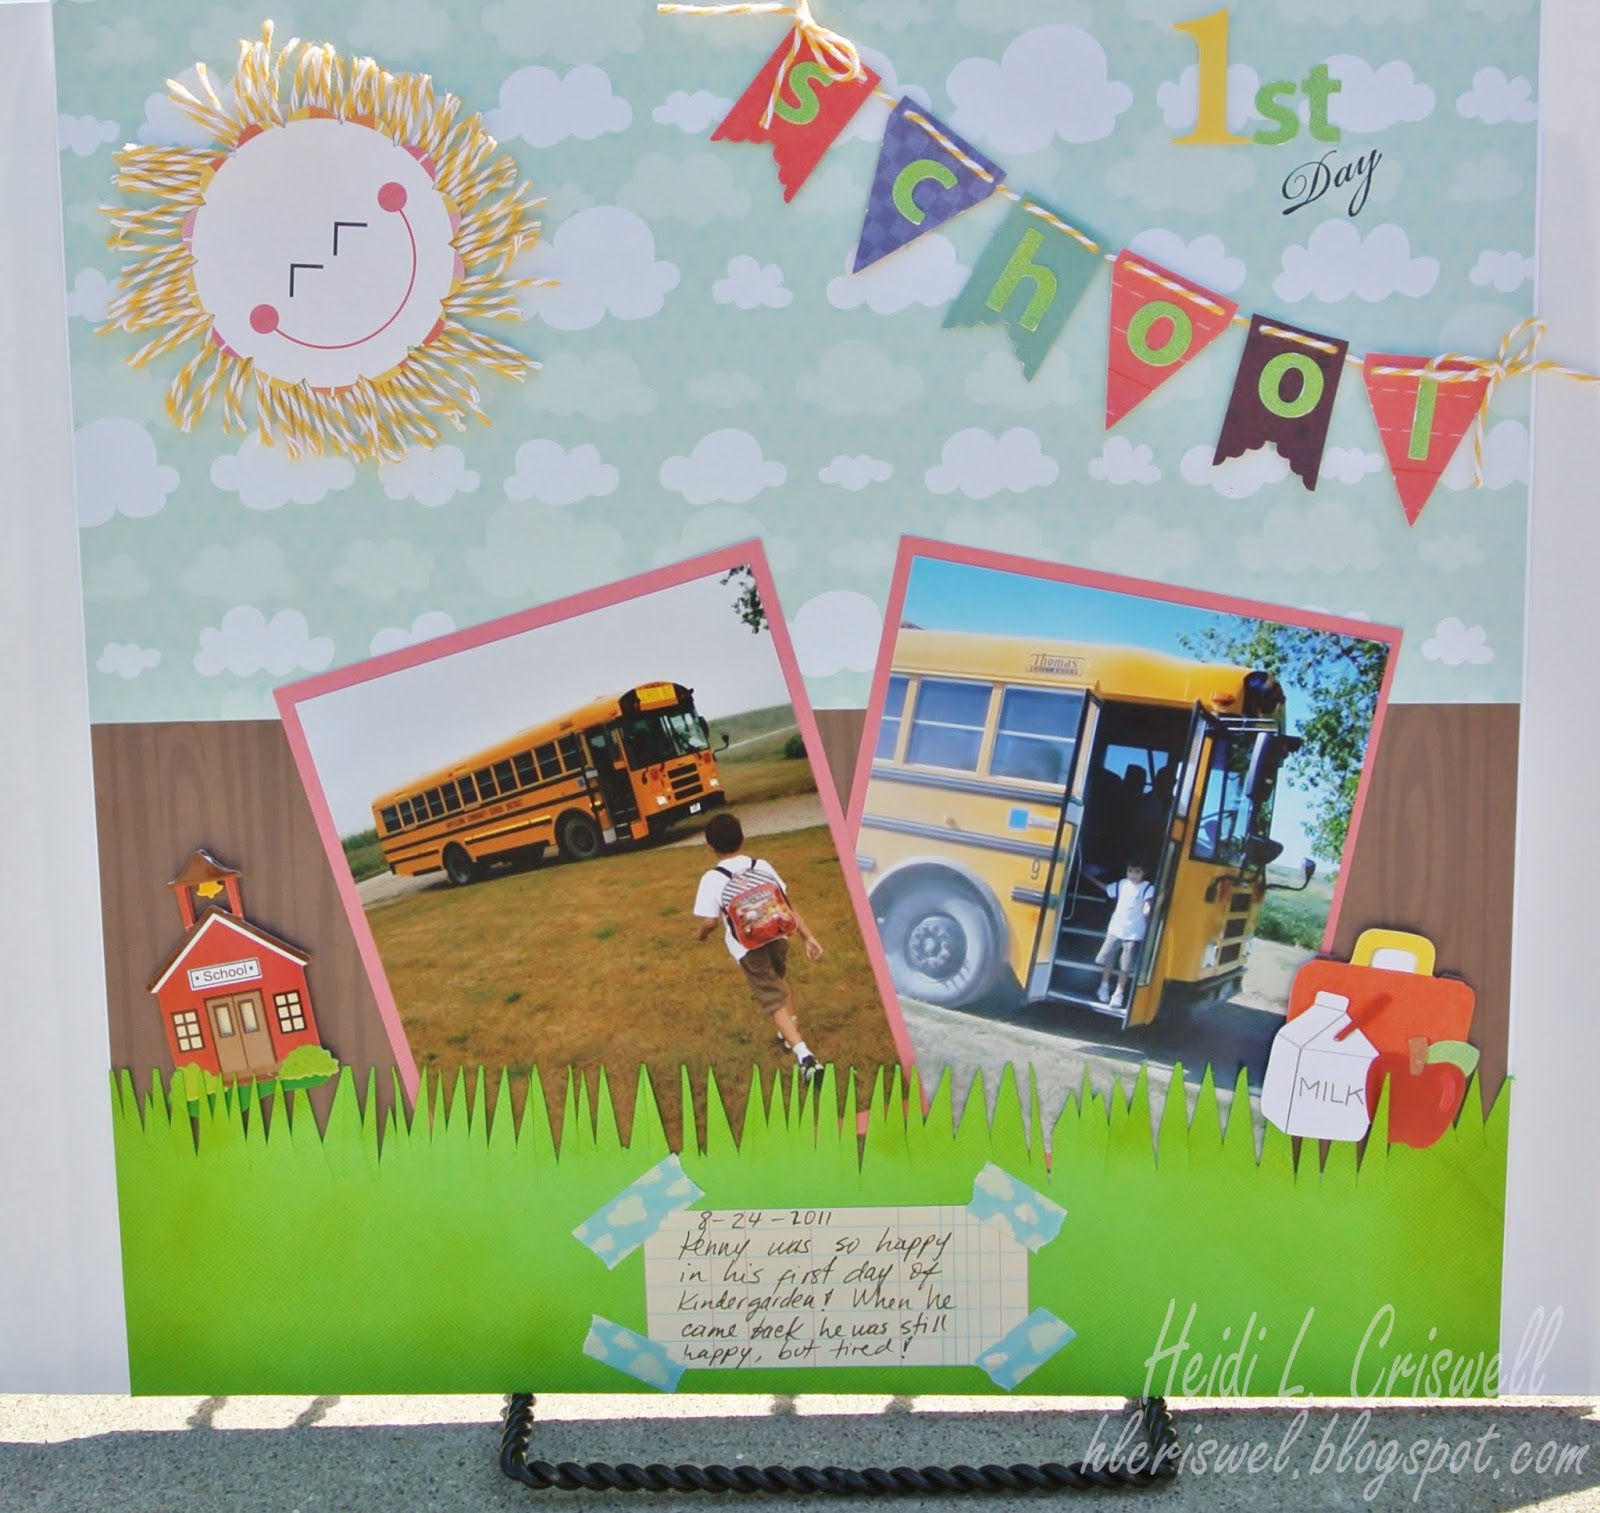 How to make scrapbook for school project - And Here Is My Project Using The Twinery Marigold Twine And The Back To School Theme